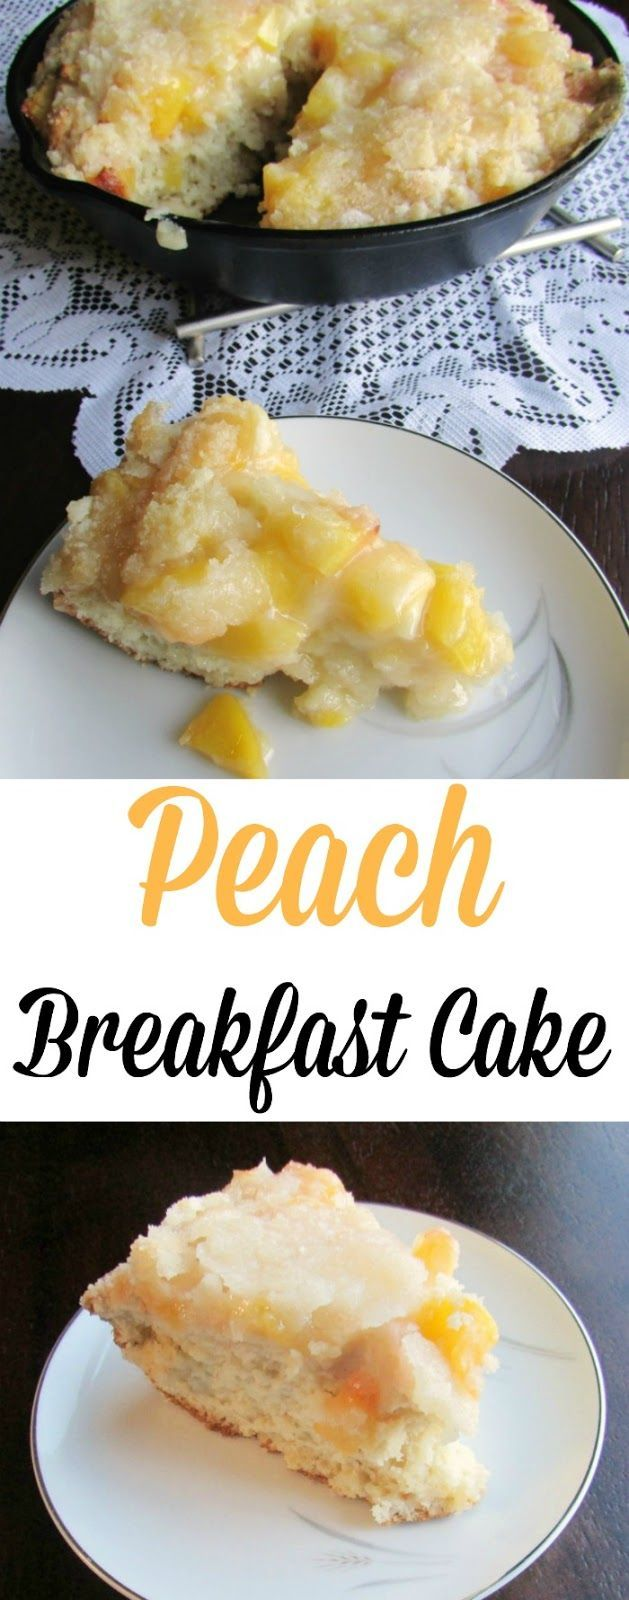 This Peach Breakfast Cake is a perfect start to a summer day.  It is a new take on my great-great-grandma's apple cake and it is delicious!